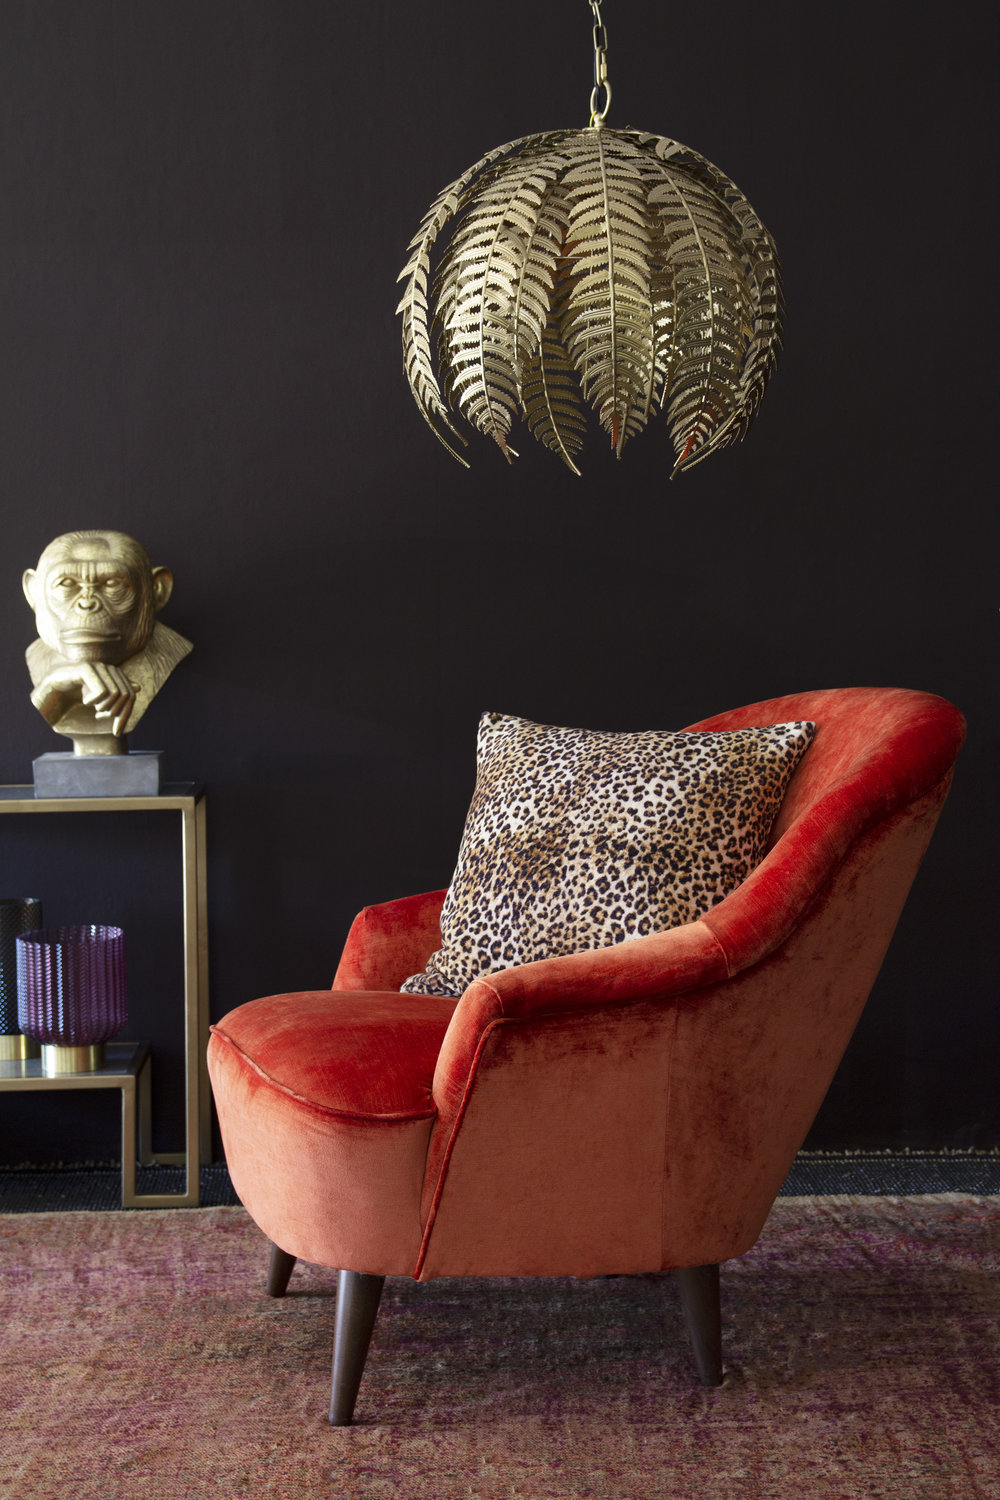 Autumn-winter collections: mixing styles in natural textures